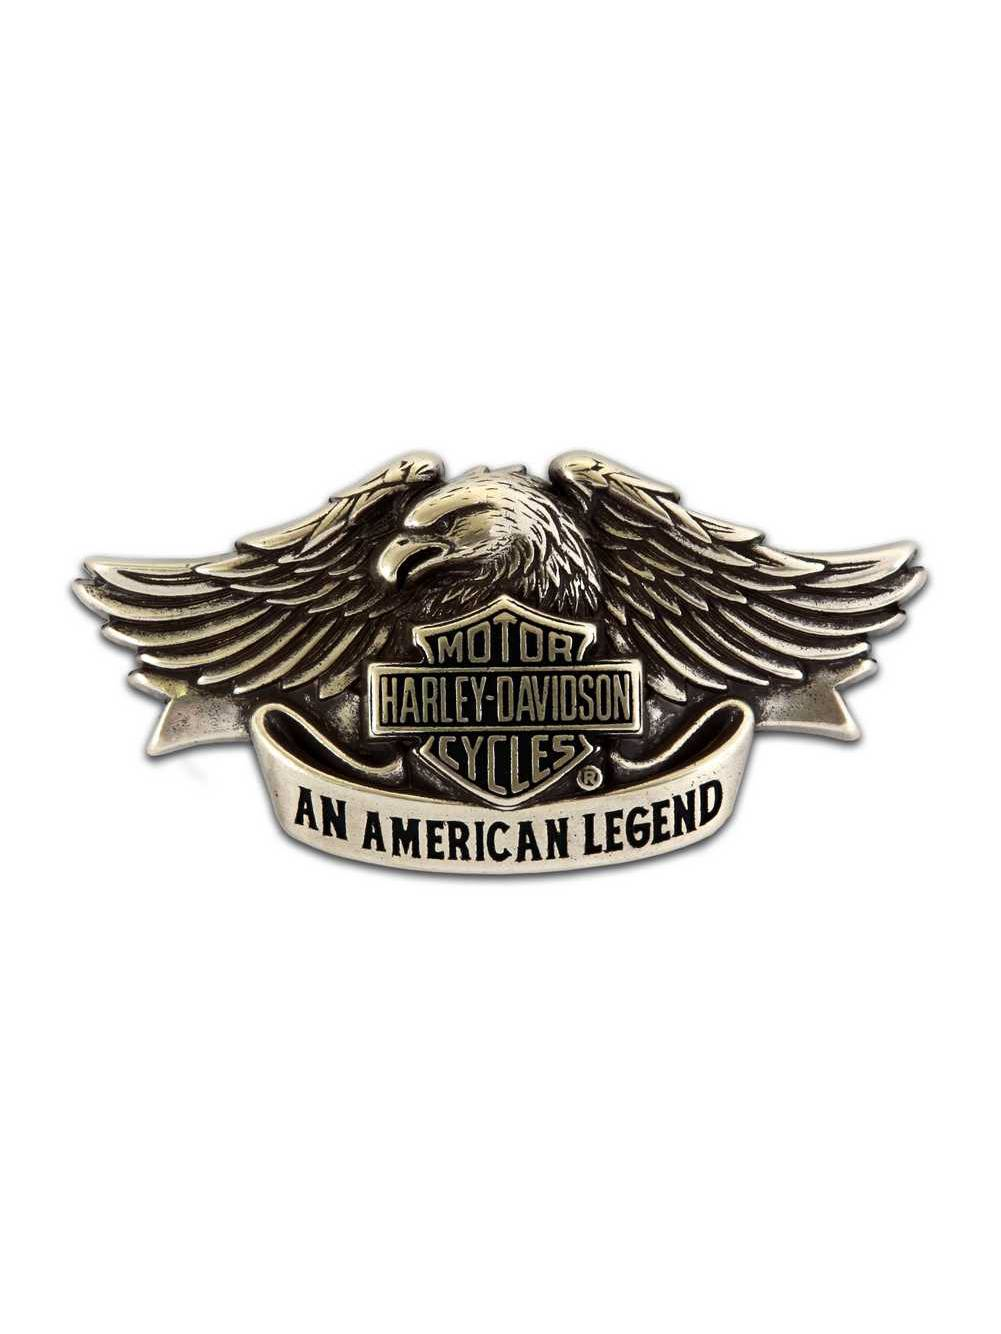 Harley-Davidson® Men/'s American Legend Brushed Chrom Belt Buckle HDMBU10082